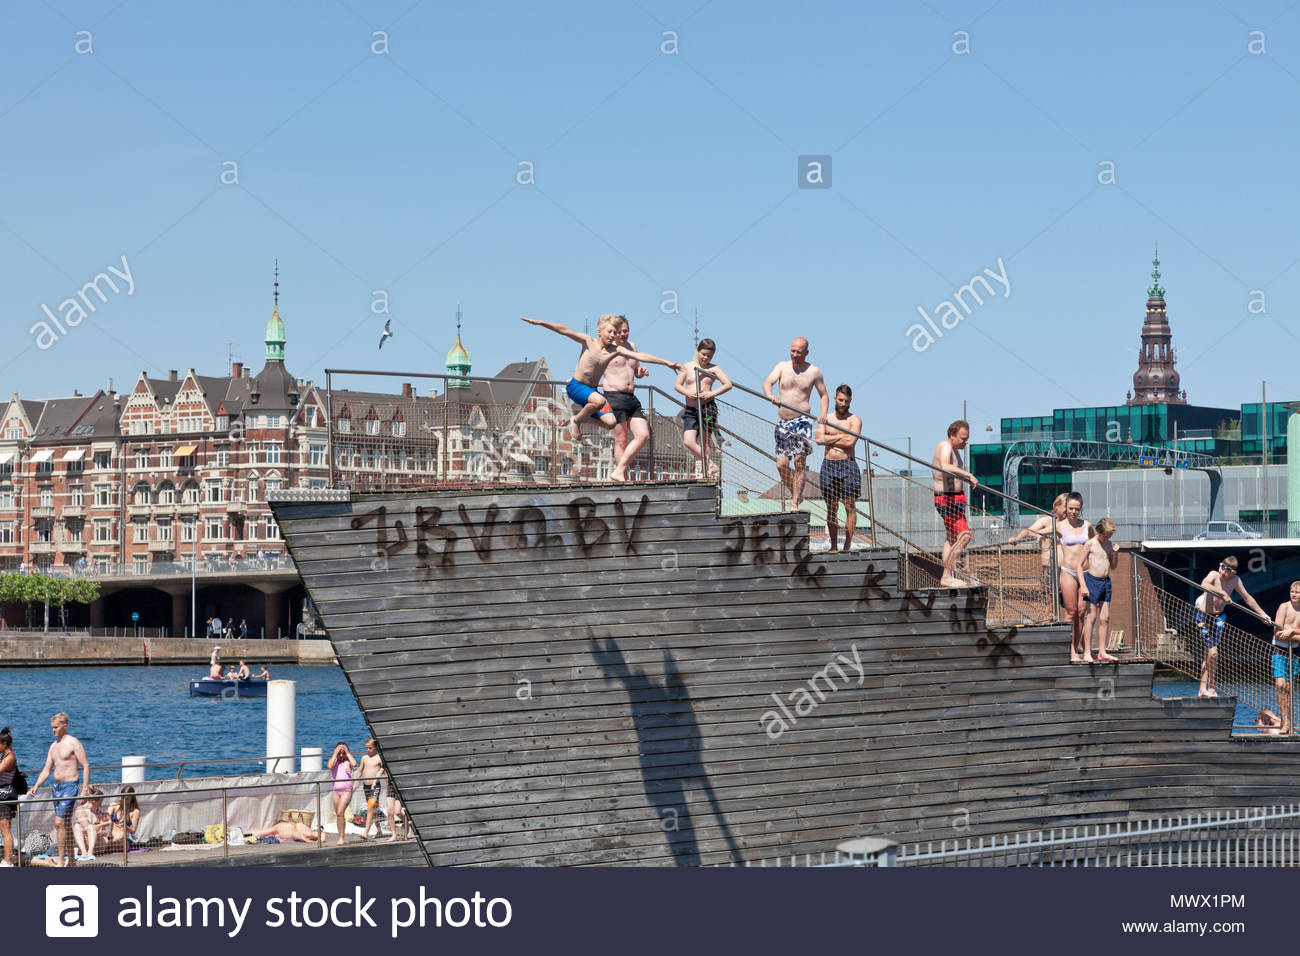 Copenhagen, Denmark. 2nd June, 2018. On the second day of the harbour bath season that began yesterday thousands of Copenhageners, tourists and visitors enjoy another warm and sunny summer day of the long-lasting and early heat wave that made May the sunniest and warmest on record in Denmark, here in the Islands Brygge Harbour Bath in the inner harbour. In Denmark a summer day is any day on which temperatures top 25 degrees Celsius - until now there have been 19 of these - actually, on many days temperatures have been close to 30 degrees. Credit: Niels Quist / Alamy Live News. Stock Photo